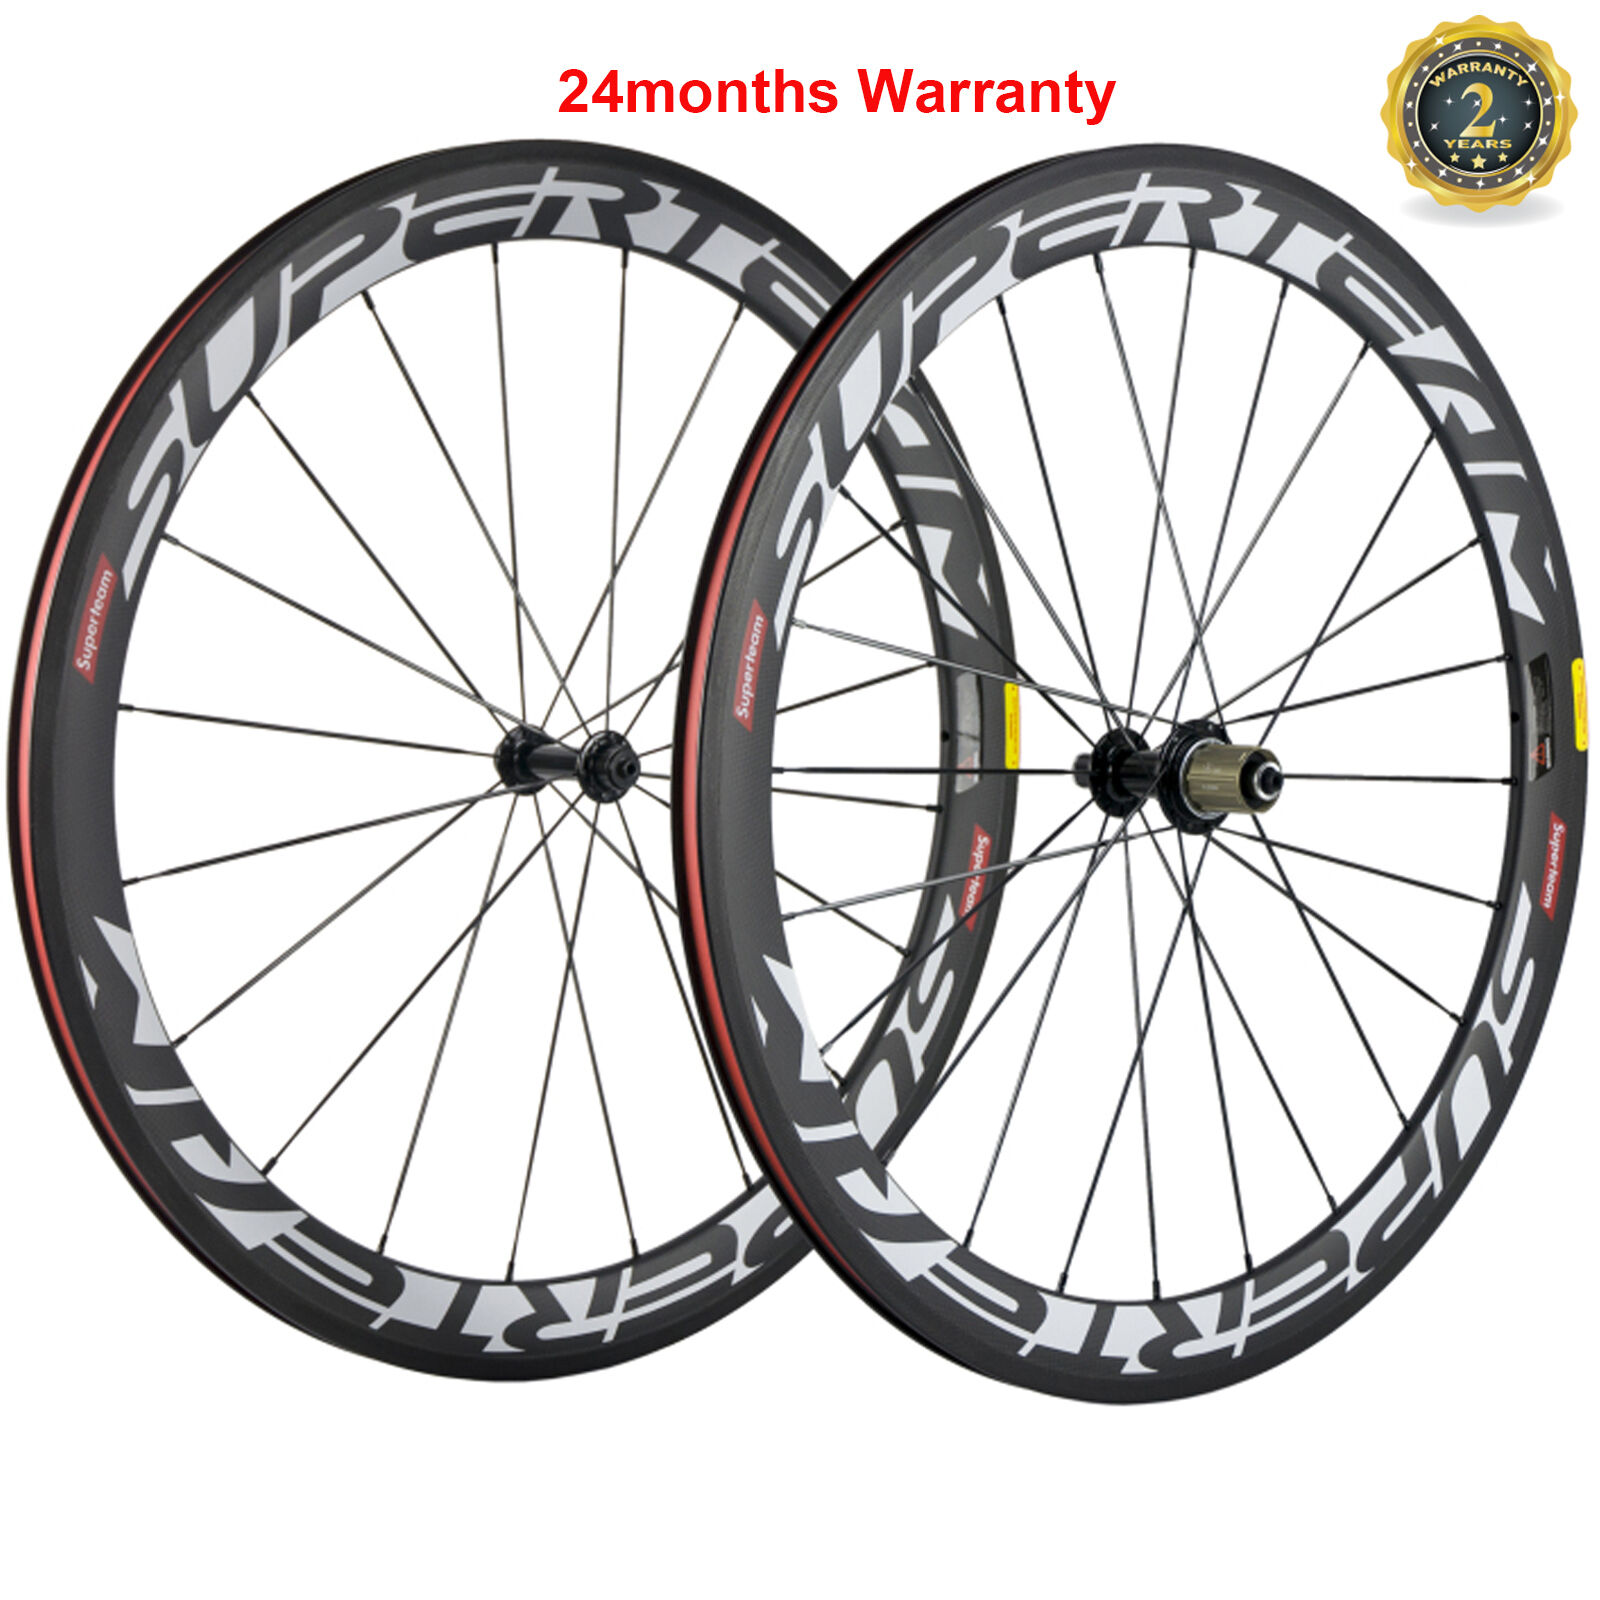 Carbon Wheels 50mm Clincher  Road Bike Wheelset Shimano Powerway Cycle Race Wheel  wholesale